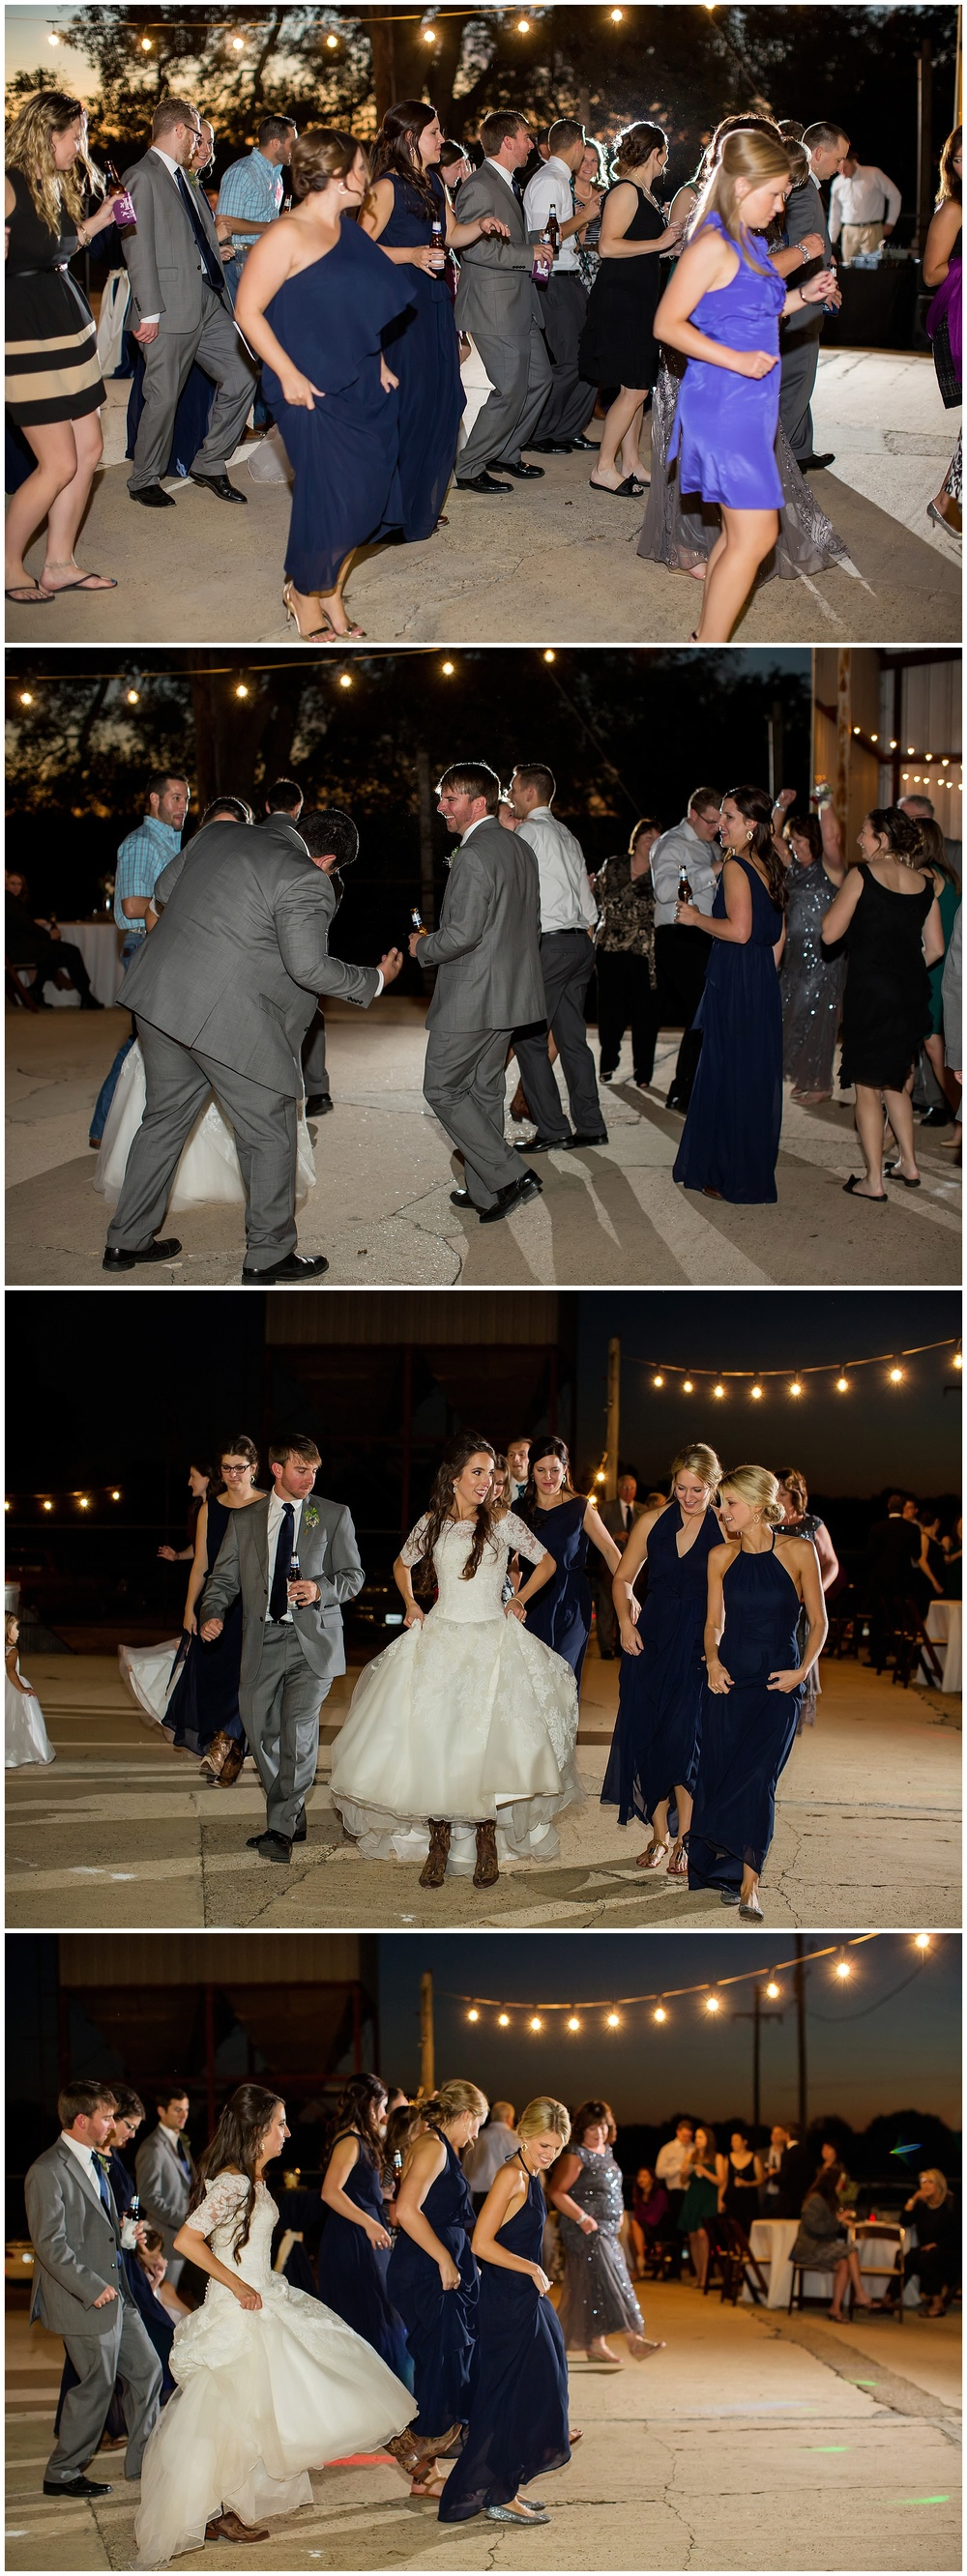 Kinler_DixieGin_Shreveport_Wedding_75.jpg